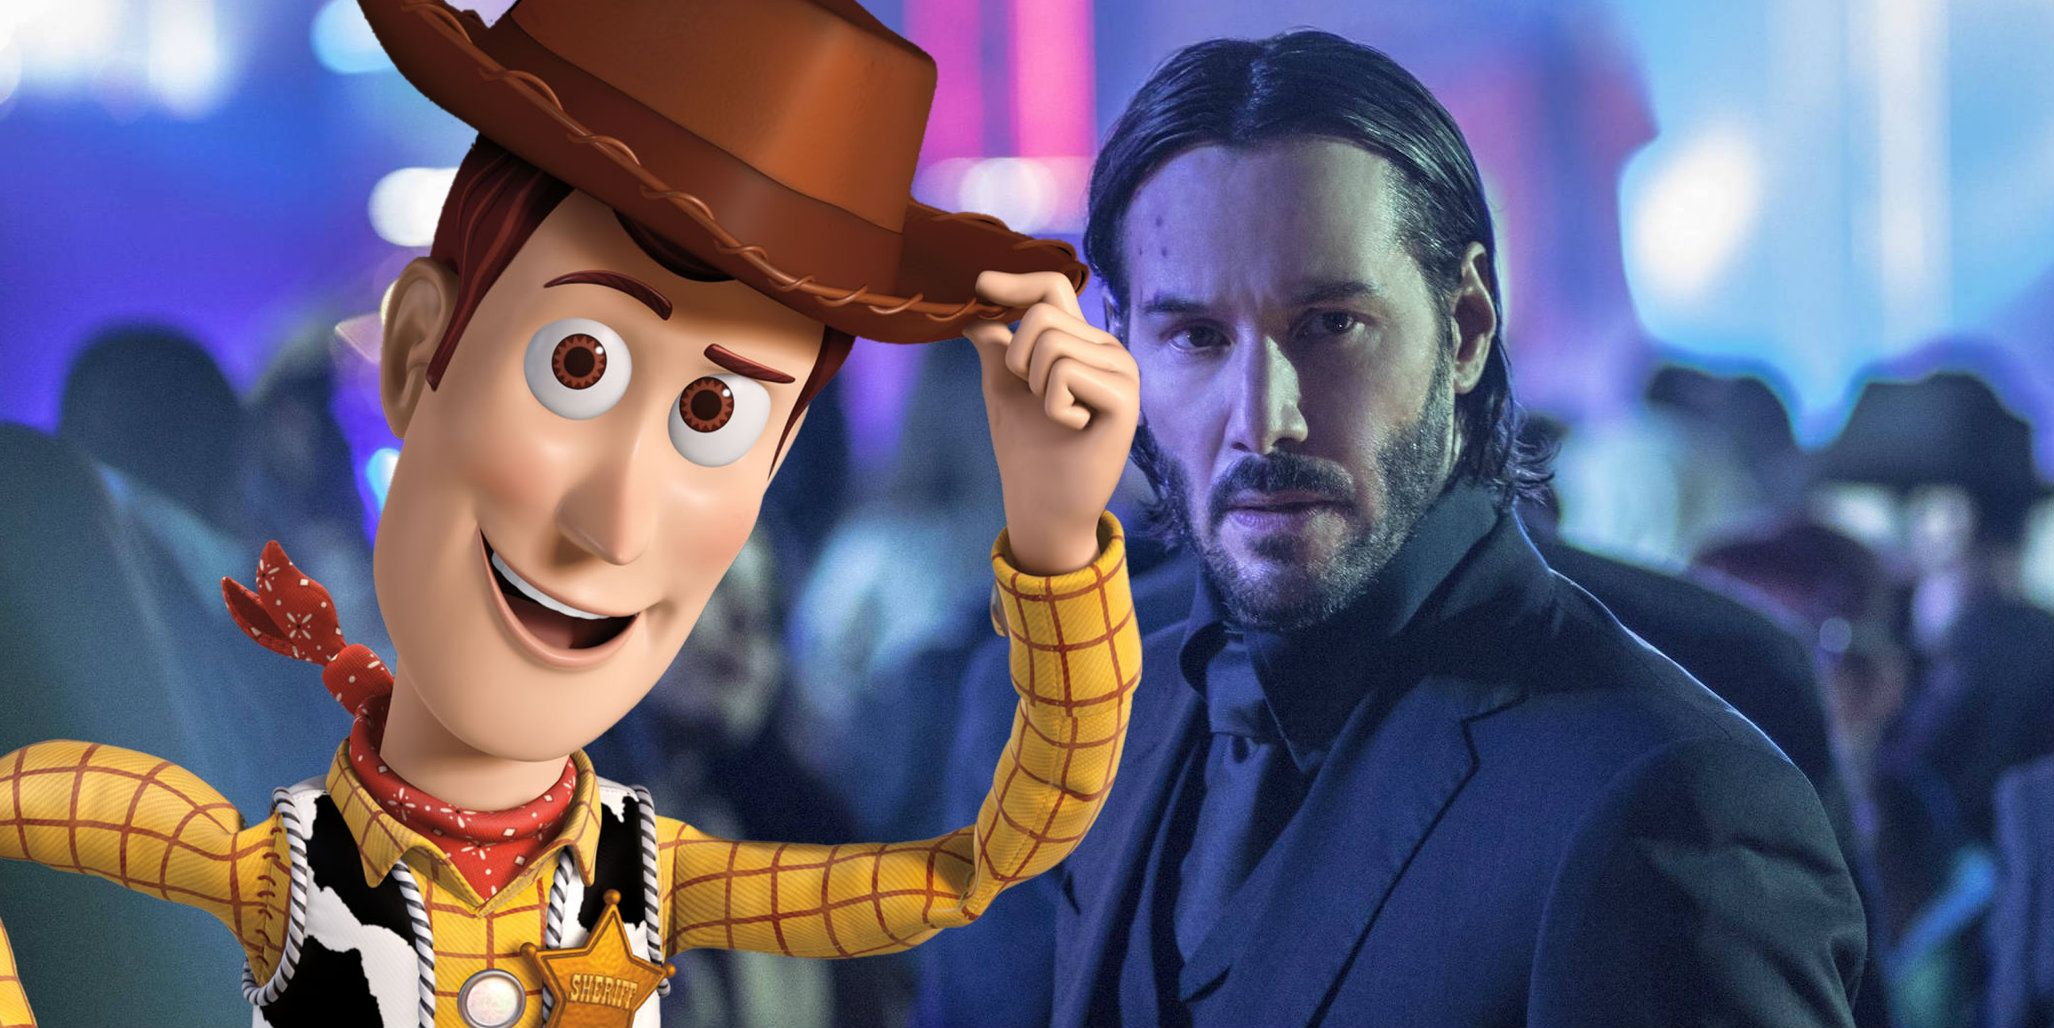 Toy Story 4 Cast : Toy story keanu reeves voices a new character screenrant